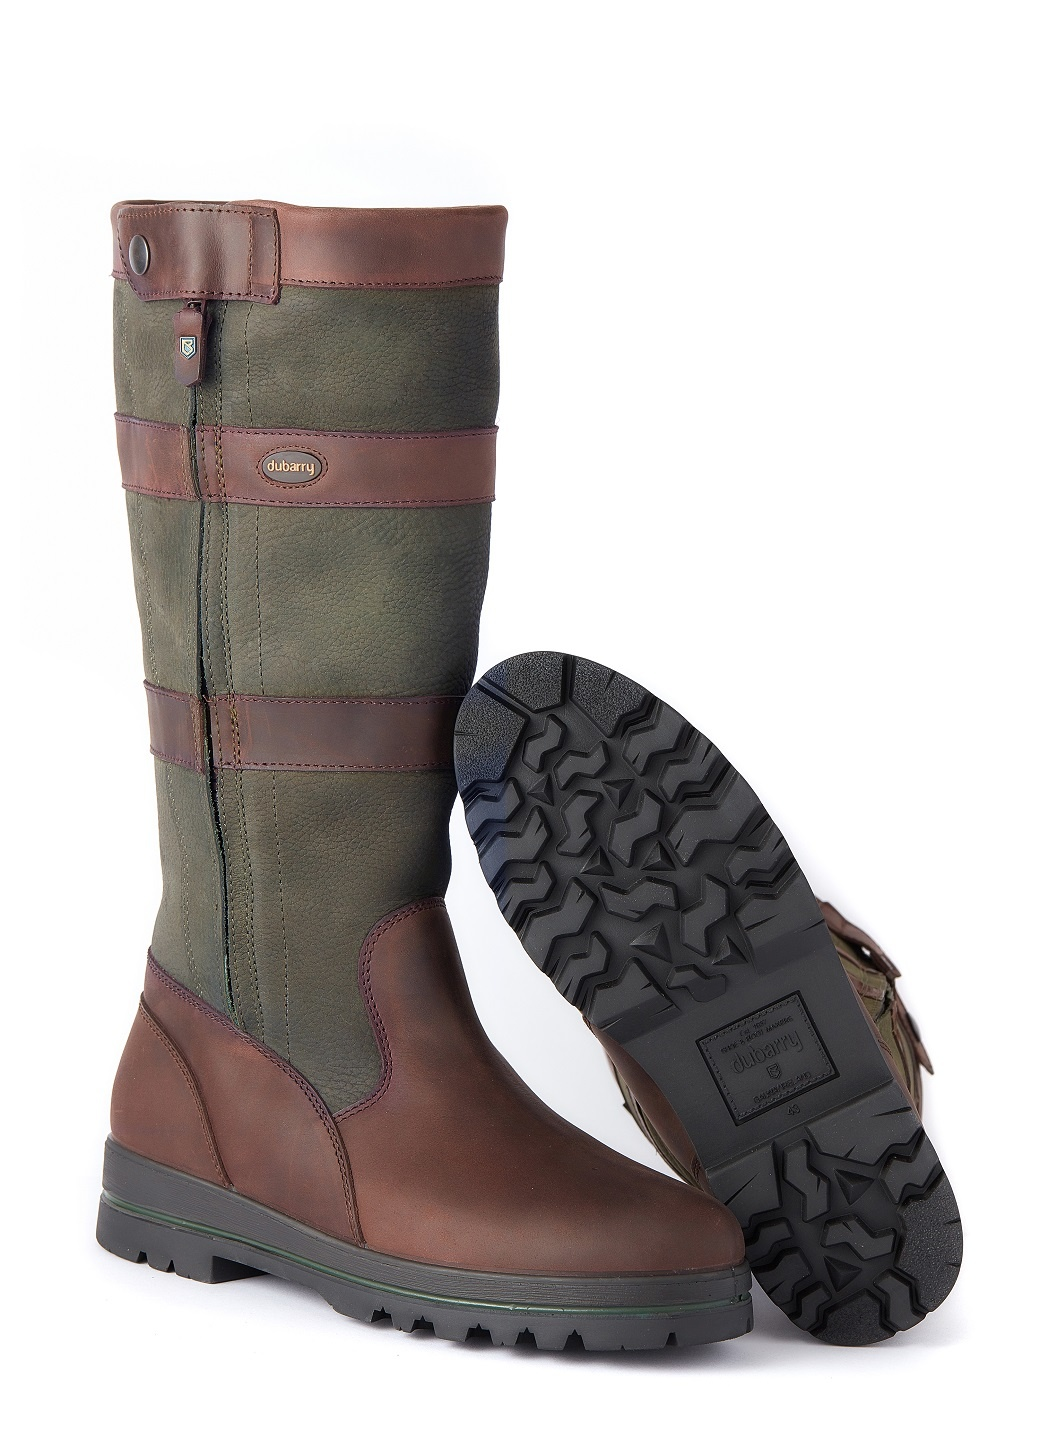 Dubarry Wexford - Ivy-2